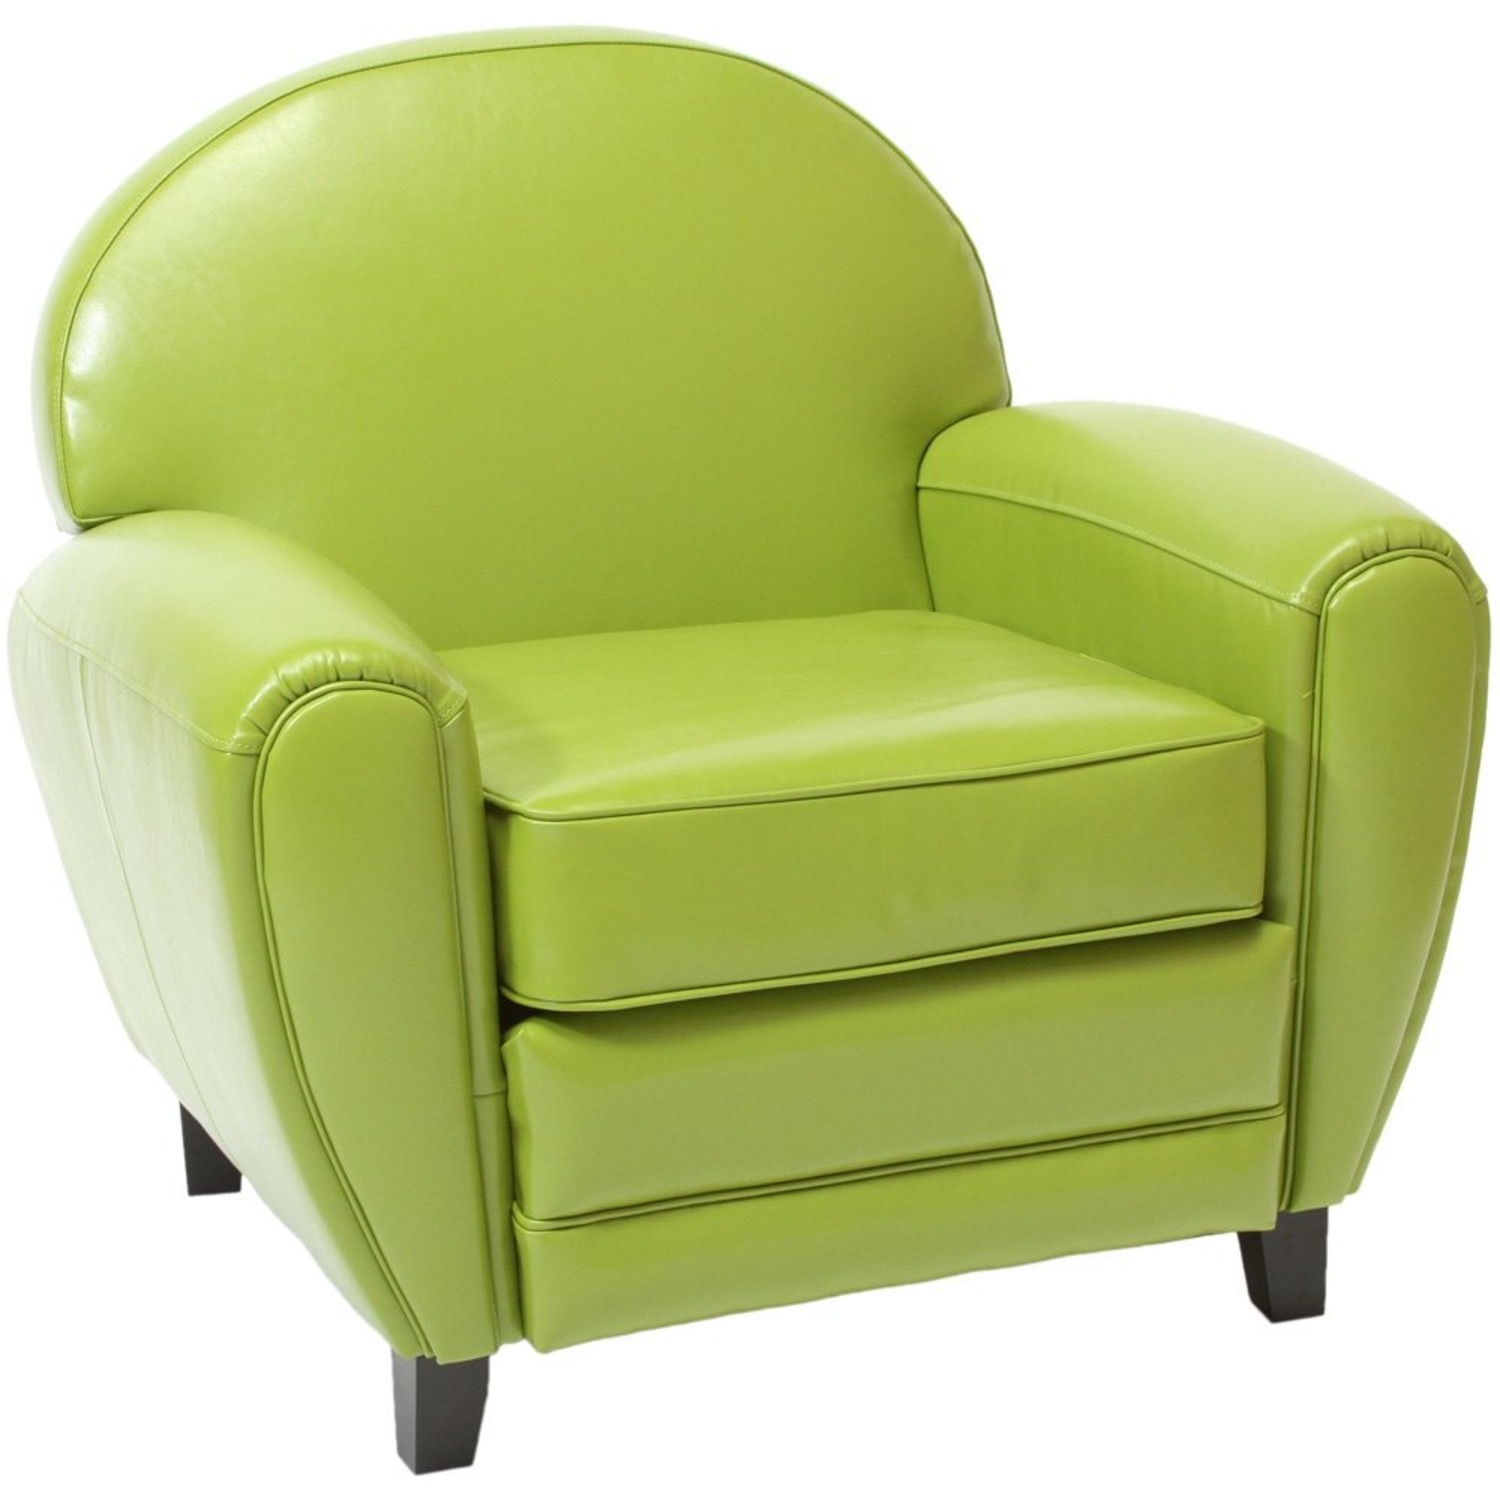 Lime Green Accent Chair - image-1